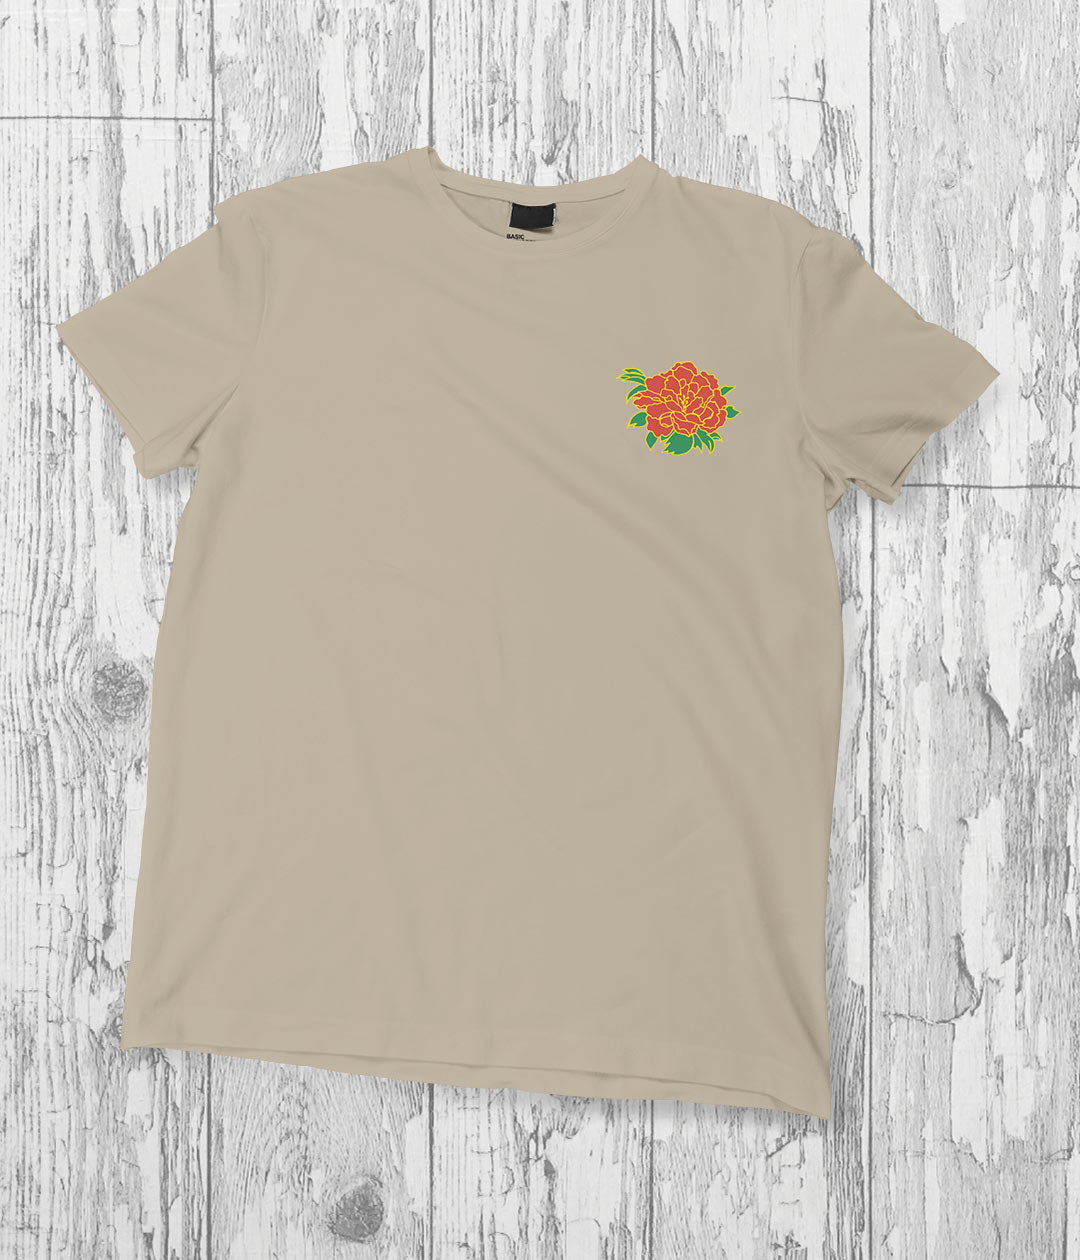 beige t shirt with kakeguri flower print on left breastu